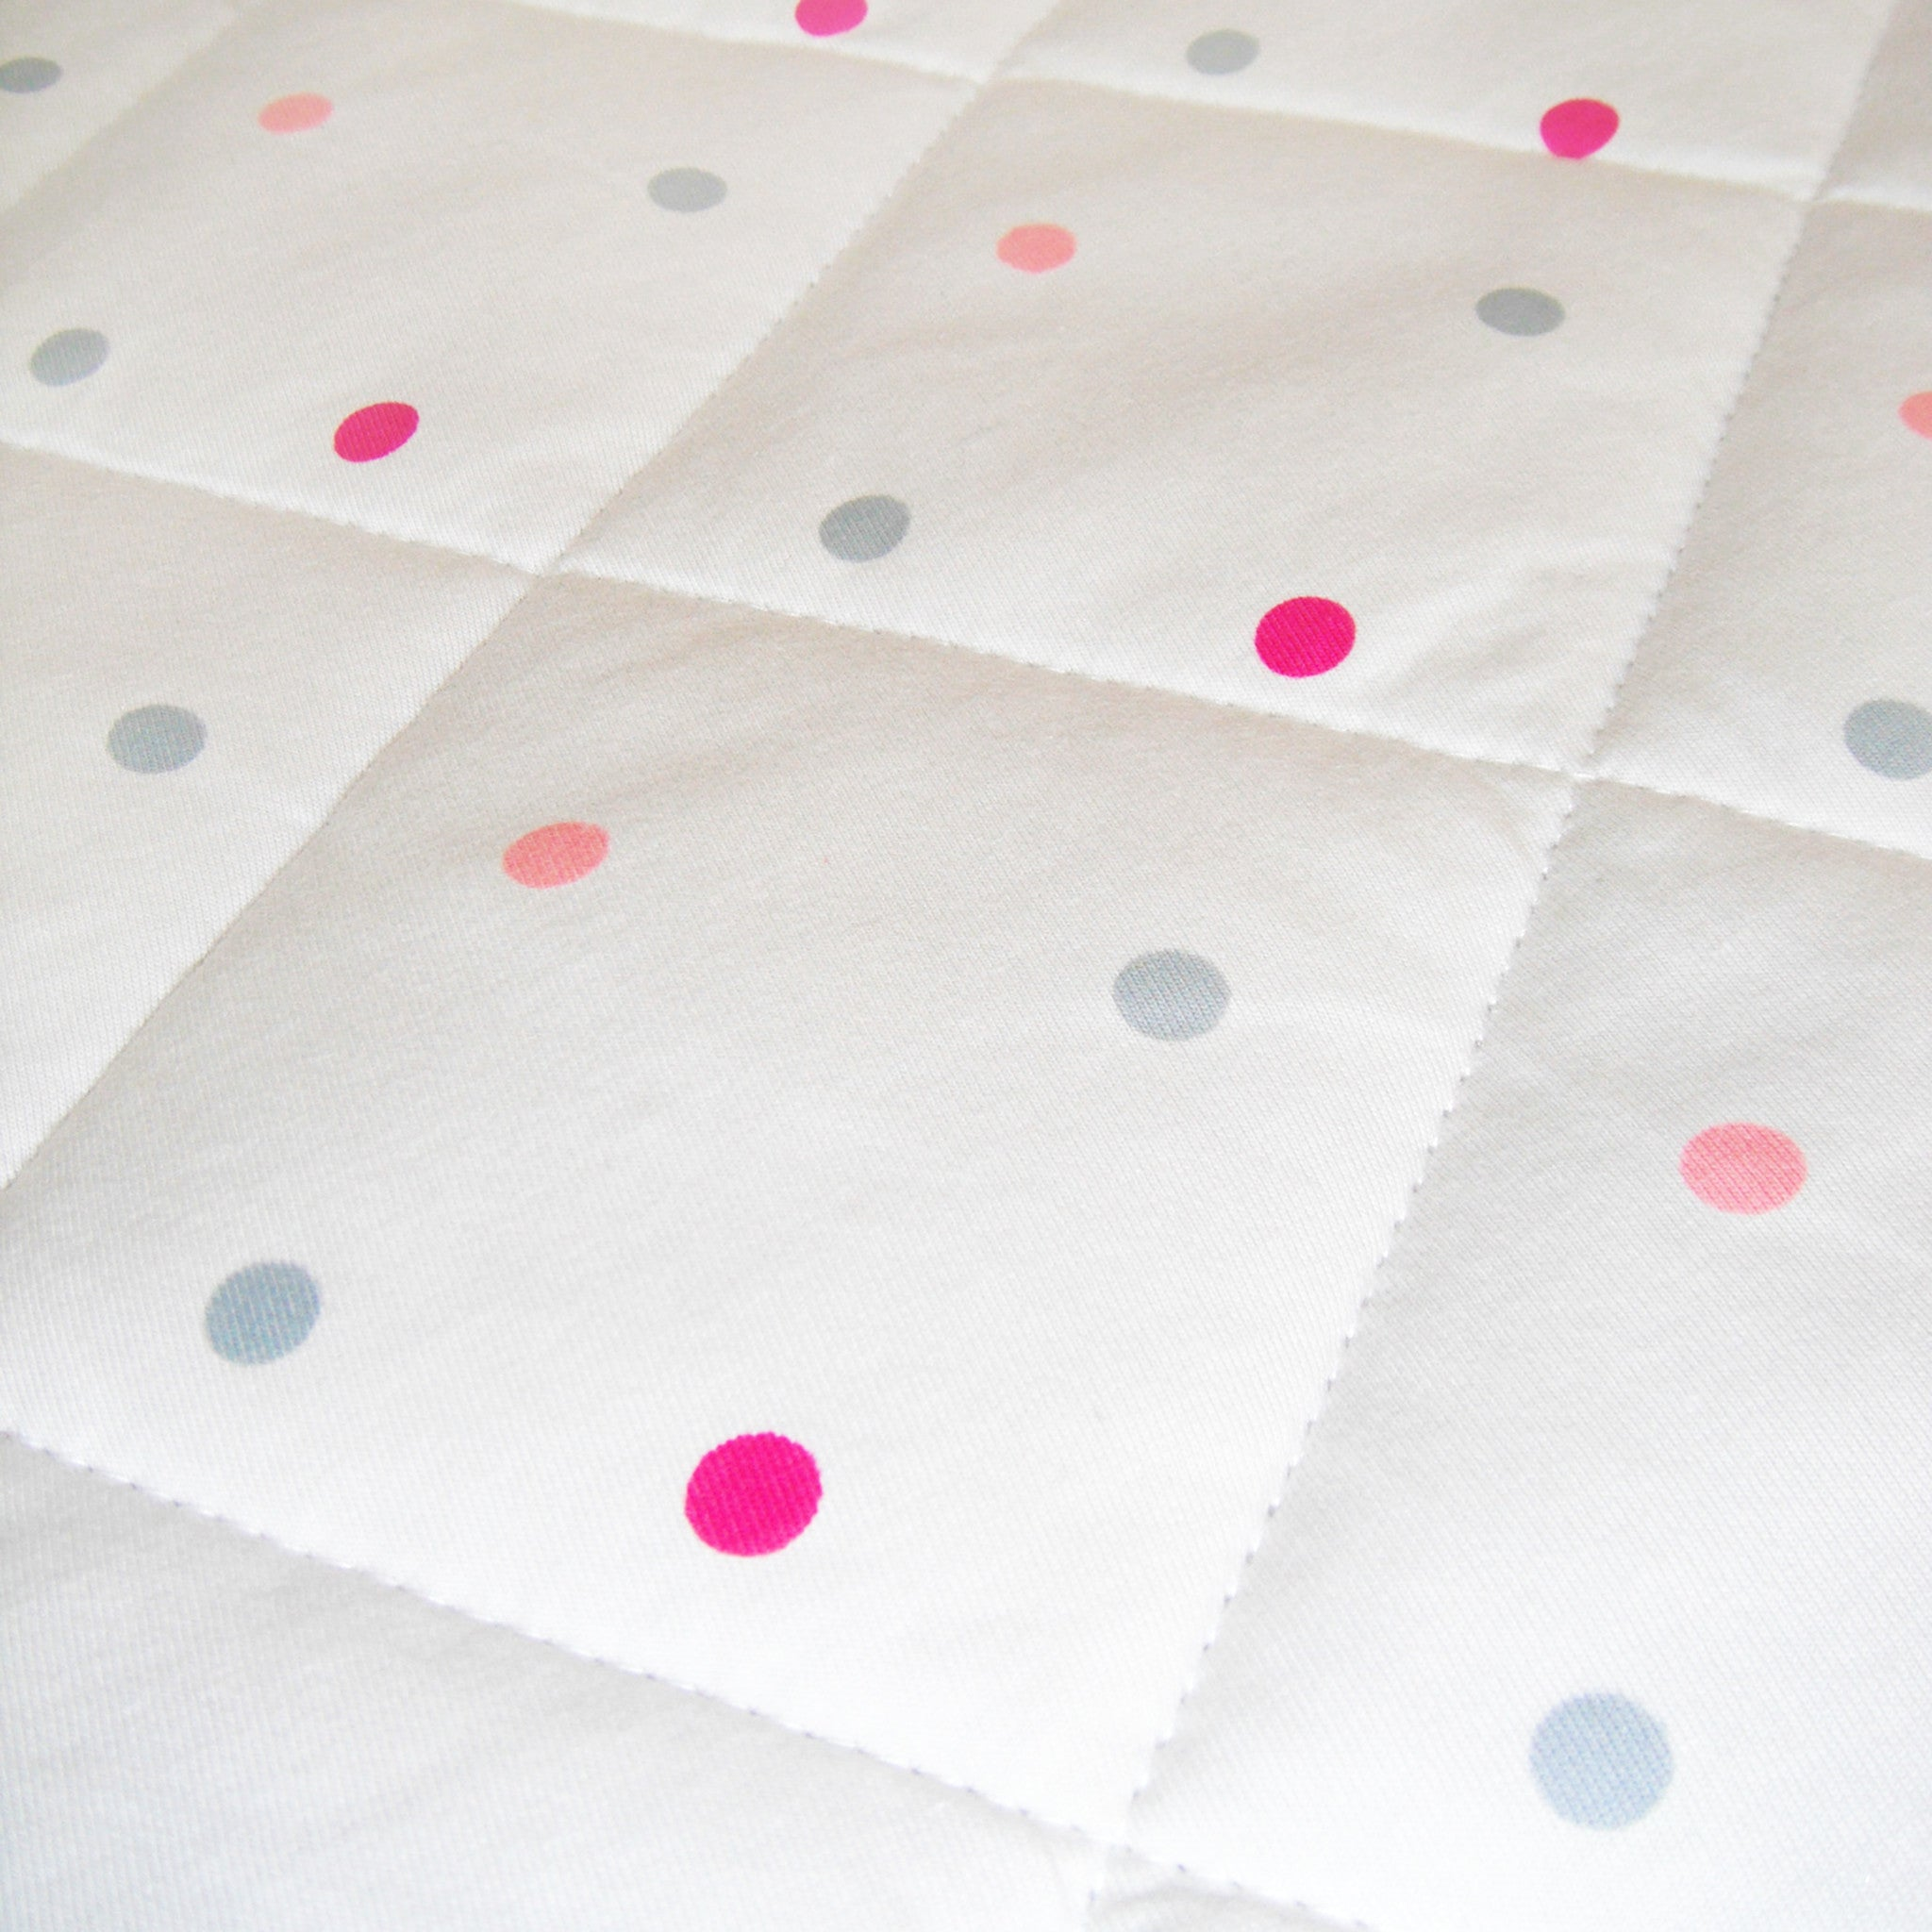 Baby Play Mat - Blush 100% Cotton Cover